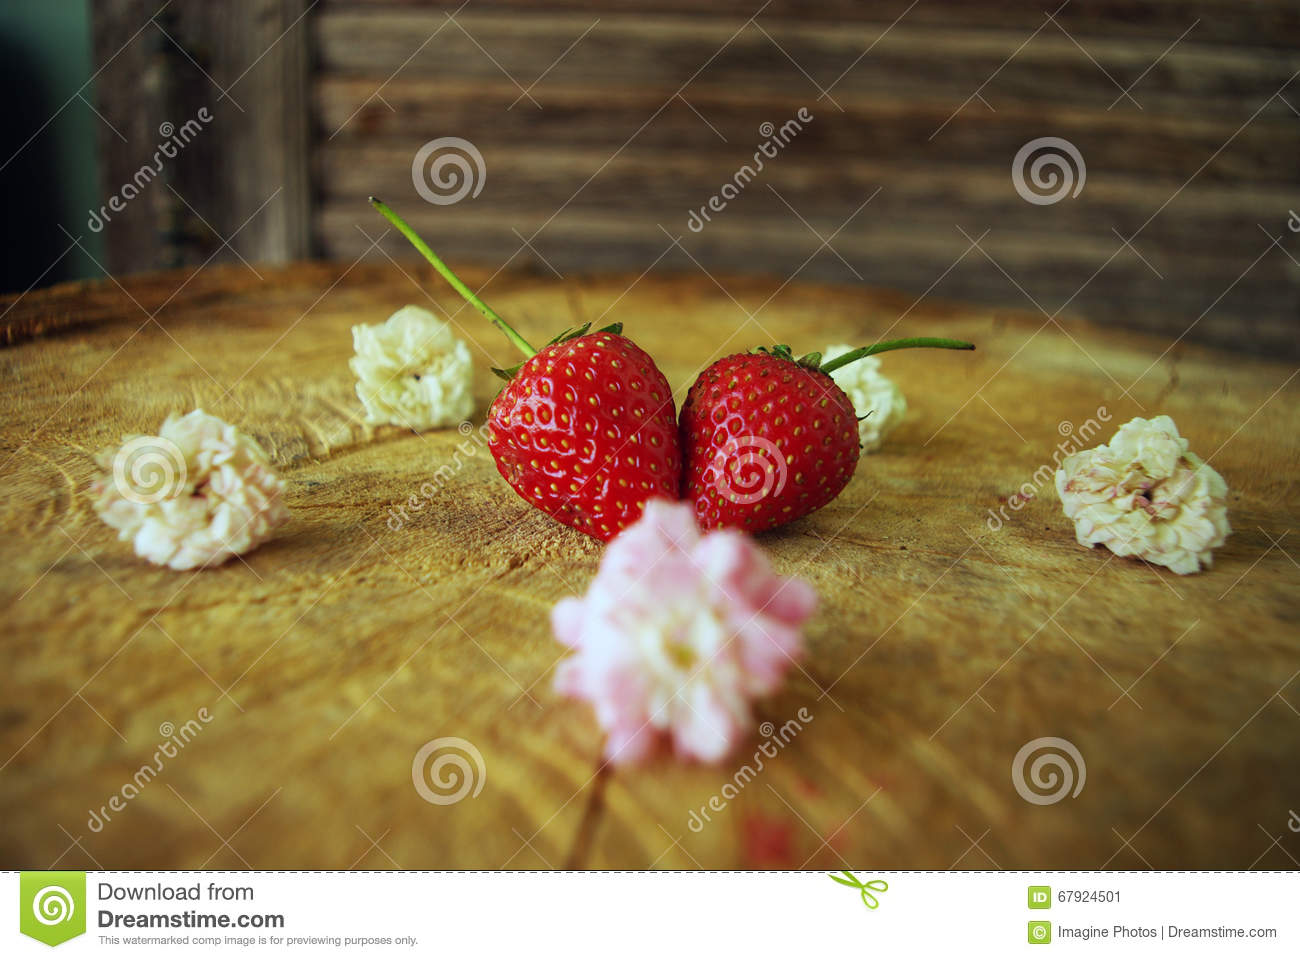 Strawberry Heart of Mary love to eat on the table.